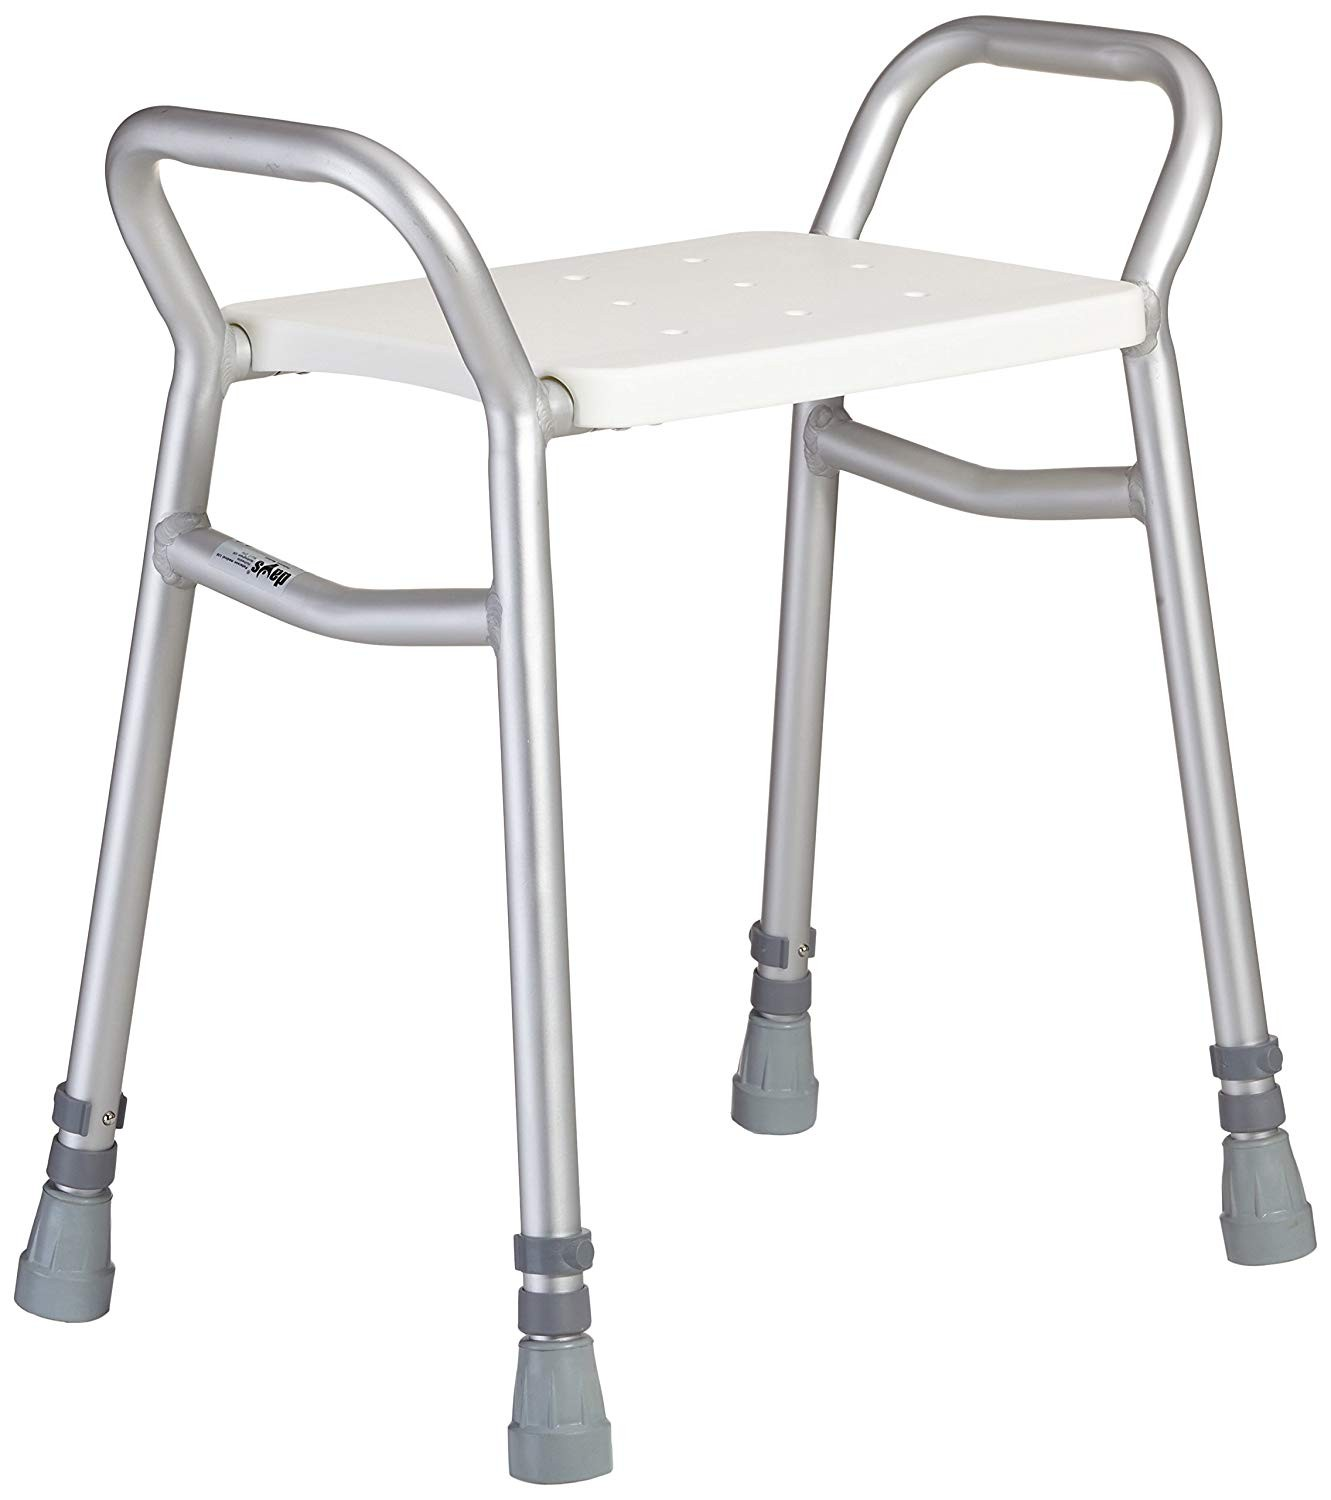 Step Stool With Handle For Elderly